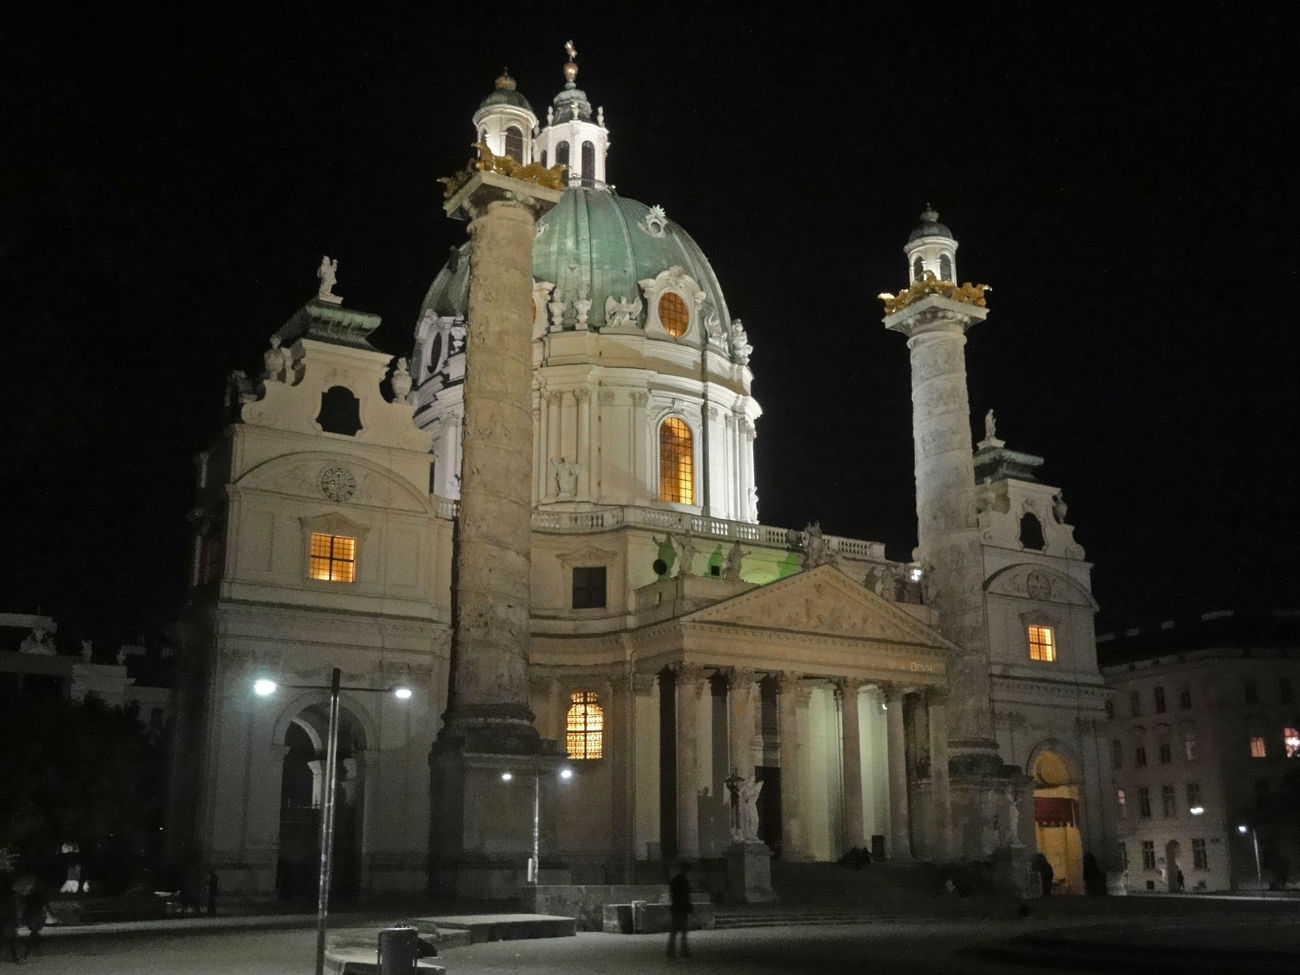 Church by night, Vienna Architecture Architecture Catedral Church Dome Europe Trip History Illuminated Night Religious Architecture Travel Travel Destinations Travel Photography Vacation Destination Vienna Wien